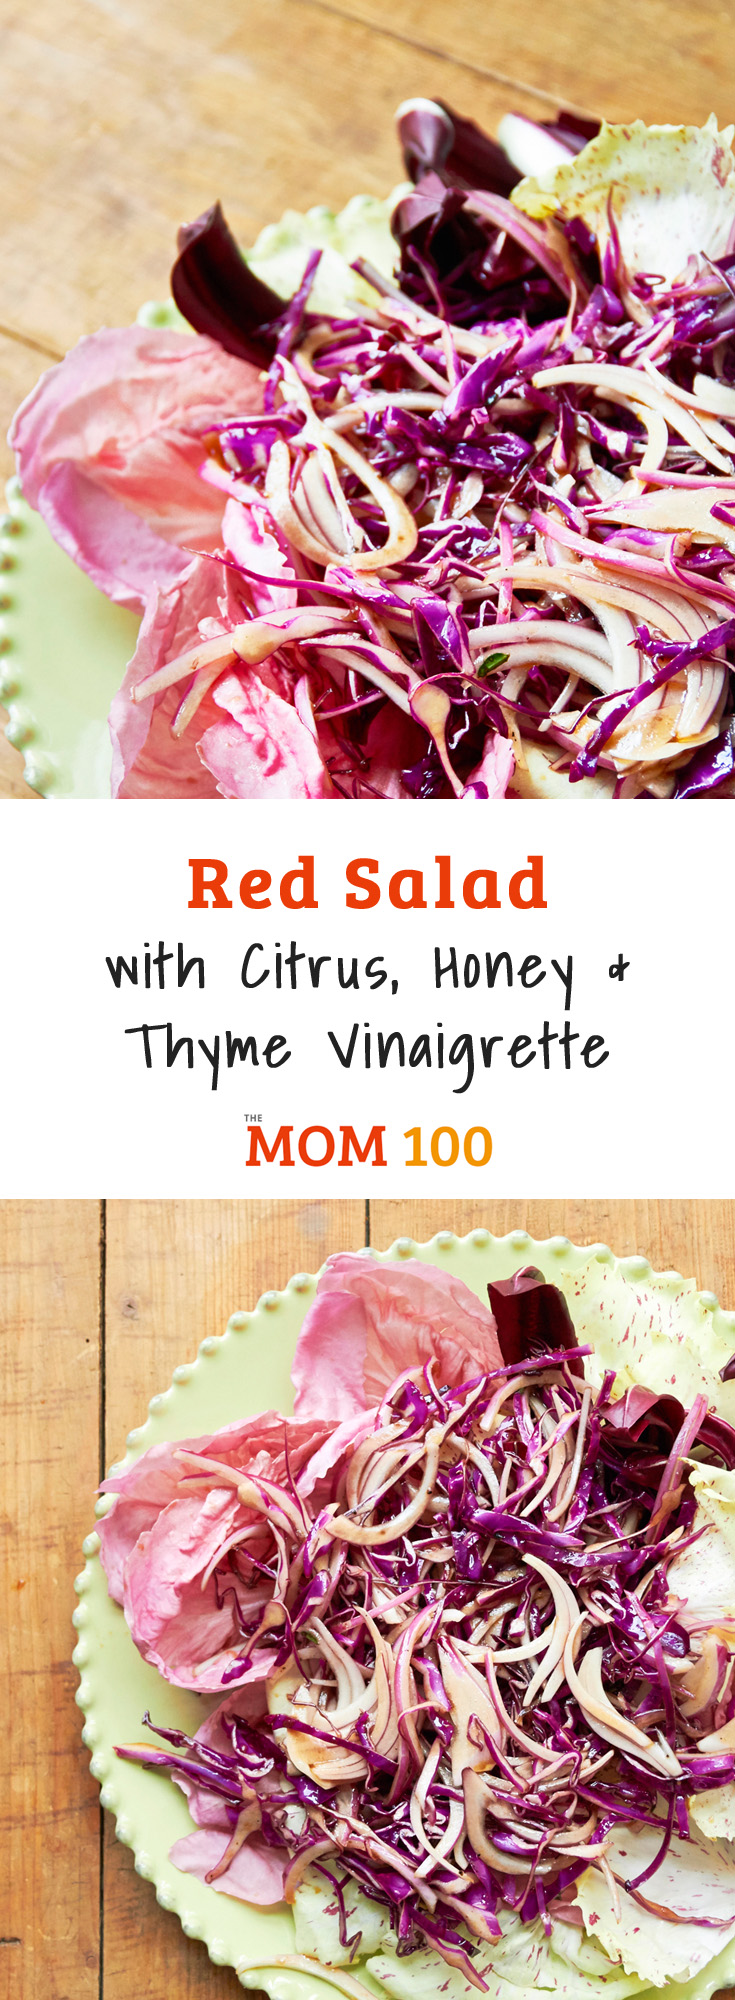 Red Salad with Citrus, Honey and Thyme Vinaigrette